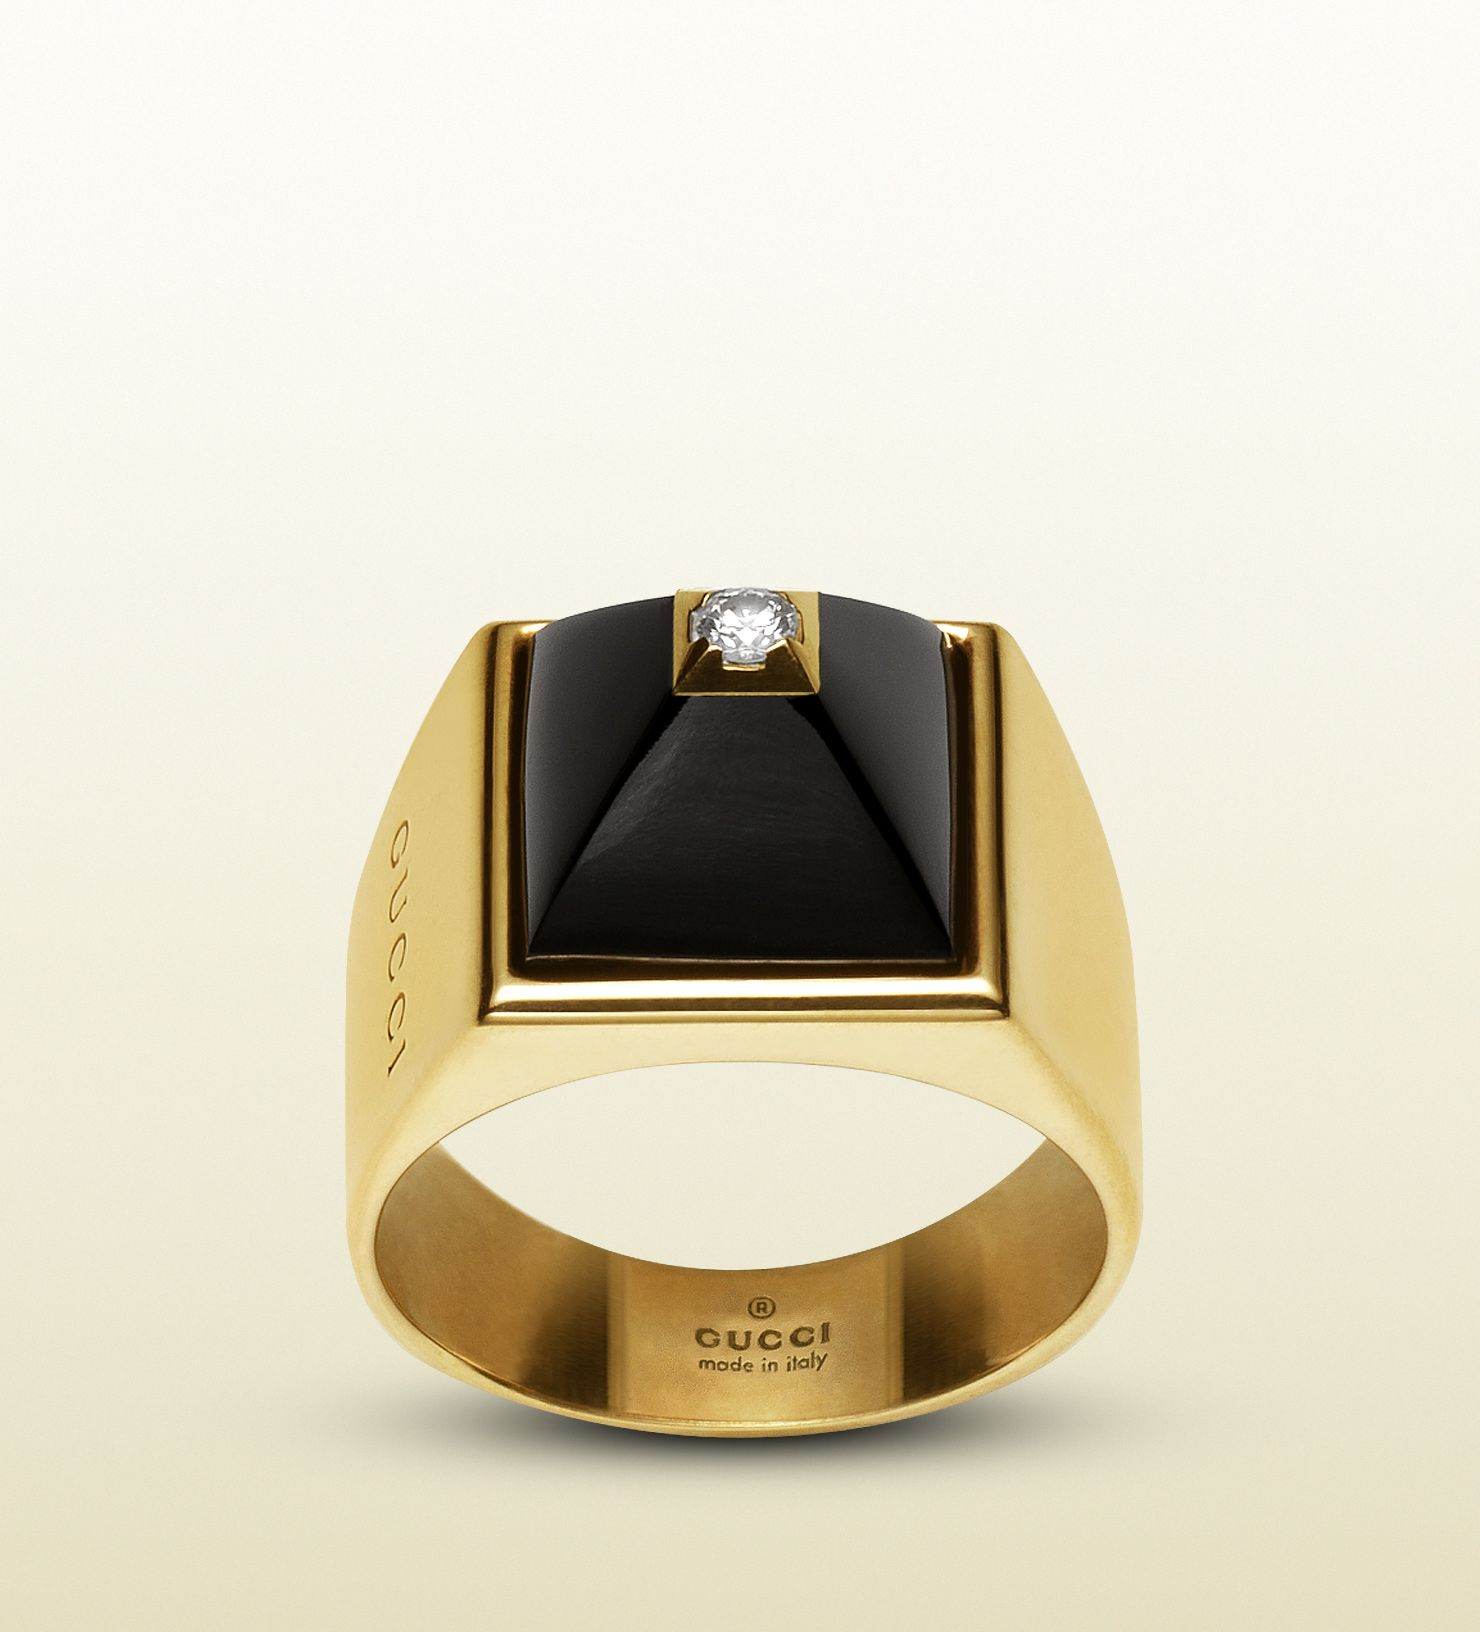 8b8534937f gucci ring in 18k in yellow gold, diamonds and black chalcedony | My ...